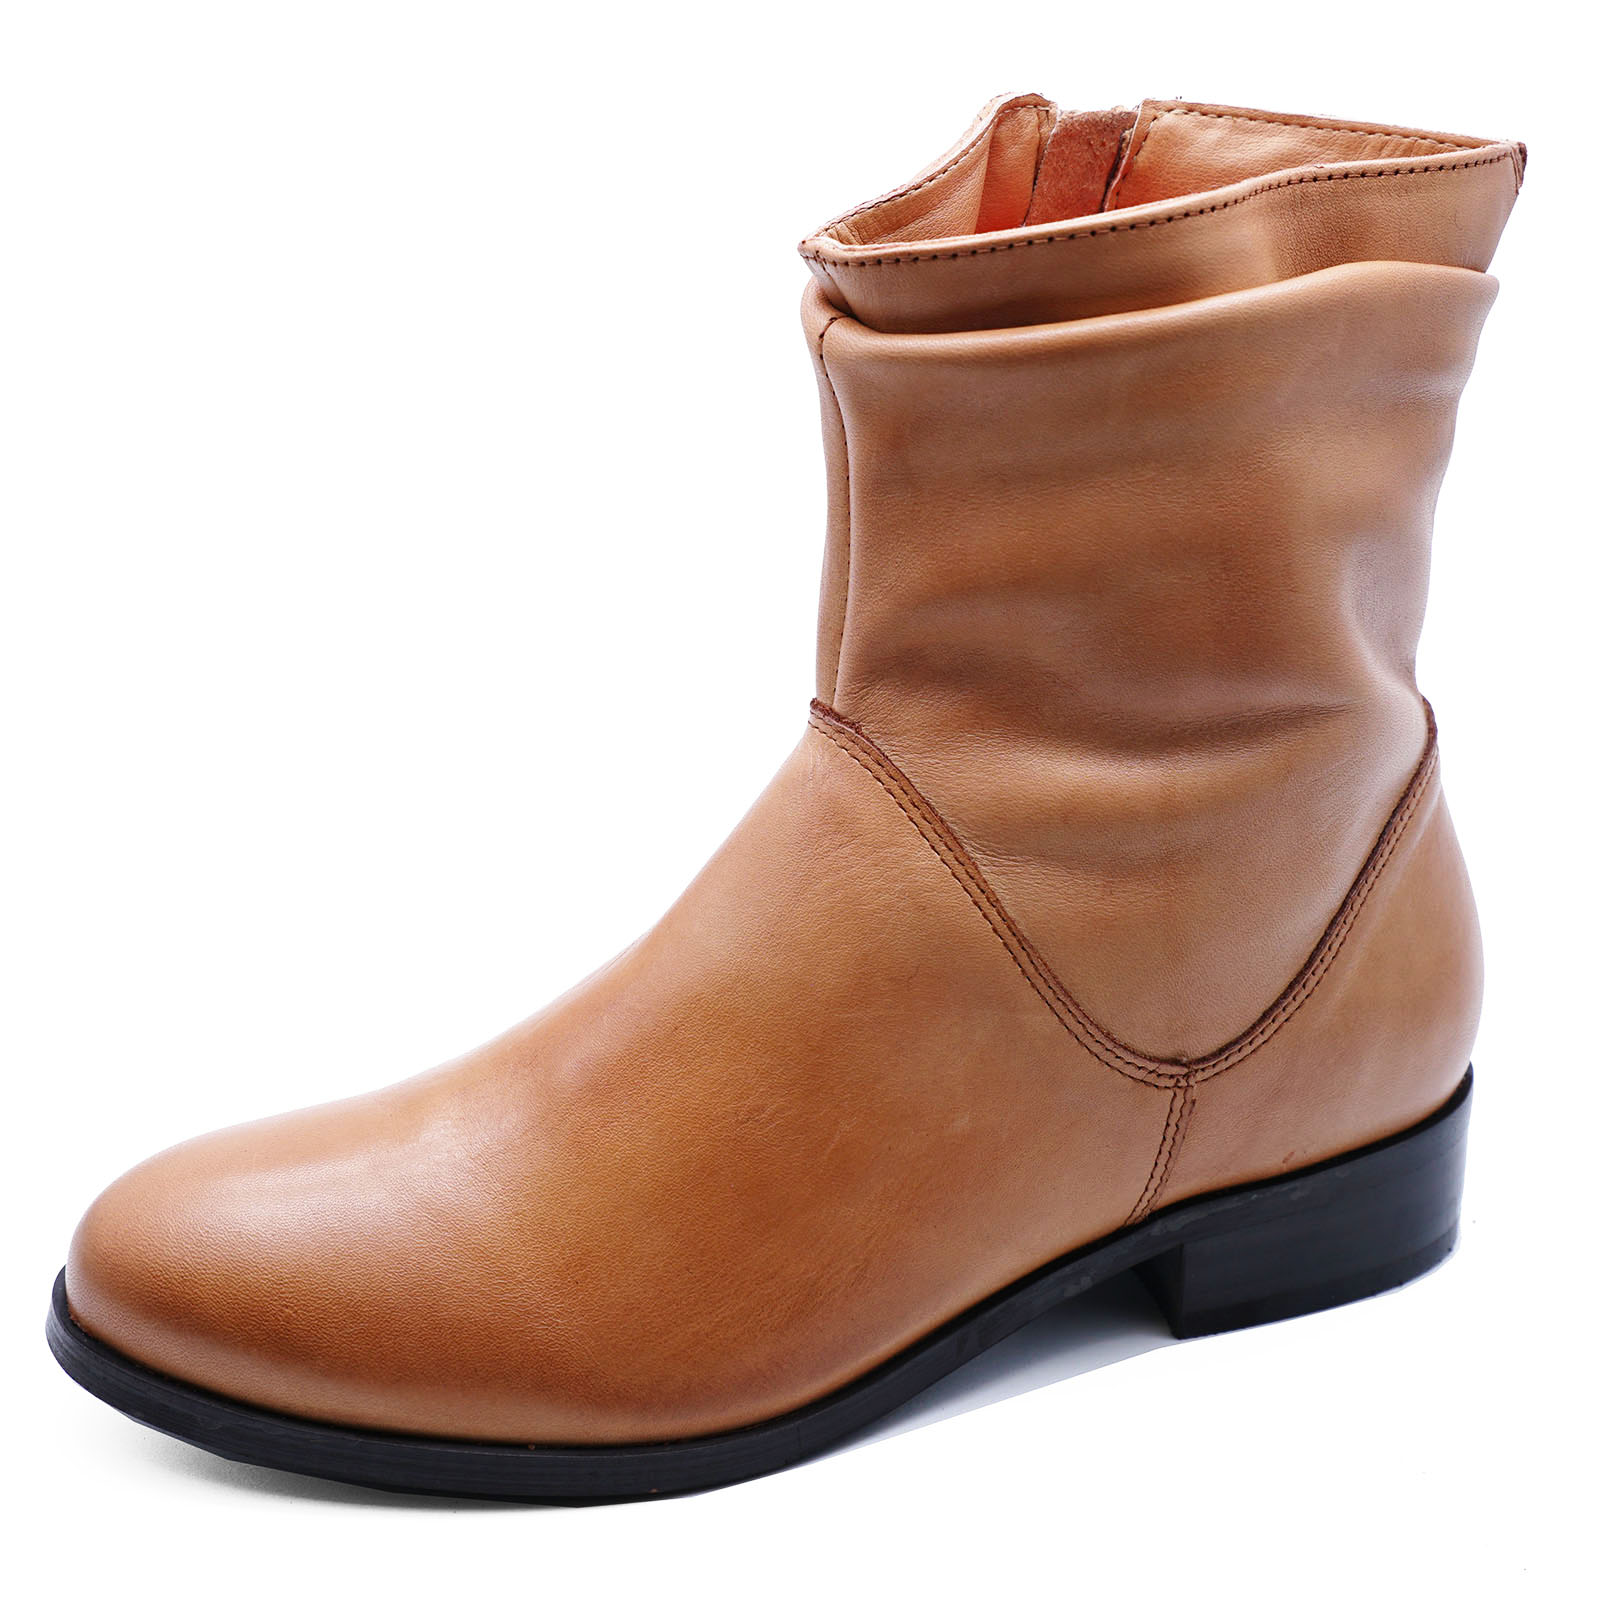 LADIES-FLAT-GENUINE-LEATHER-TAN-ZIP-UP-ANKLE-CALF-BOOTS-COMFY-SHOES-SIZES-2-9 thumbnail 26